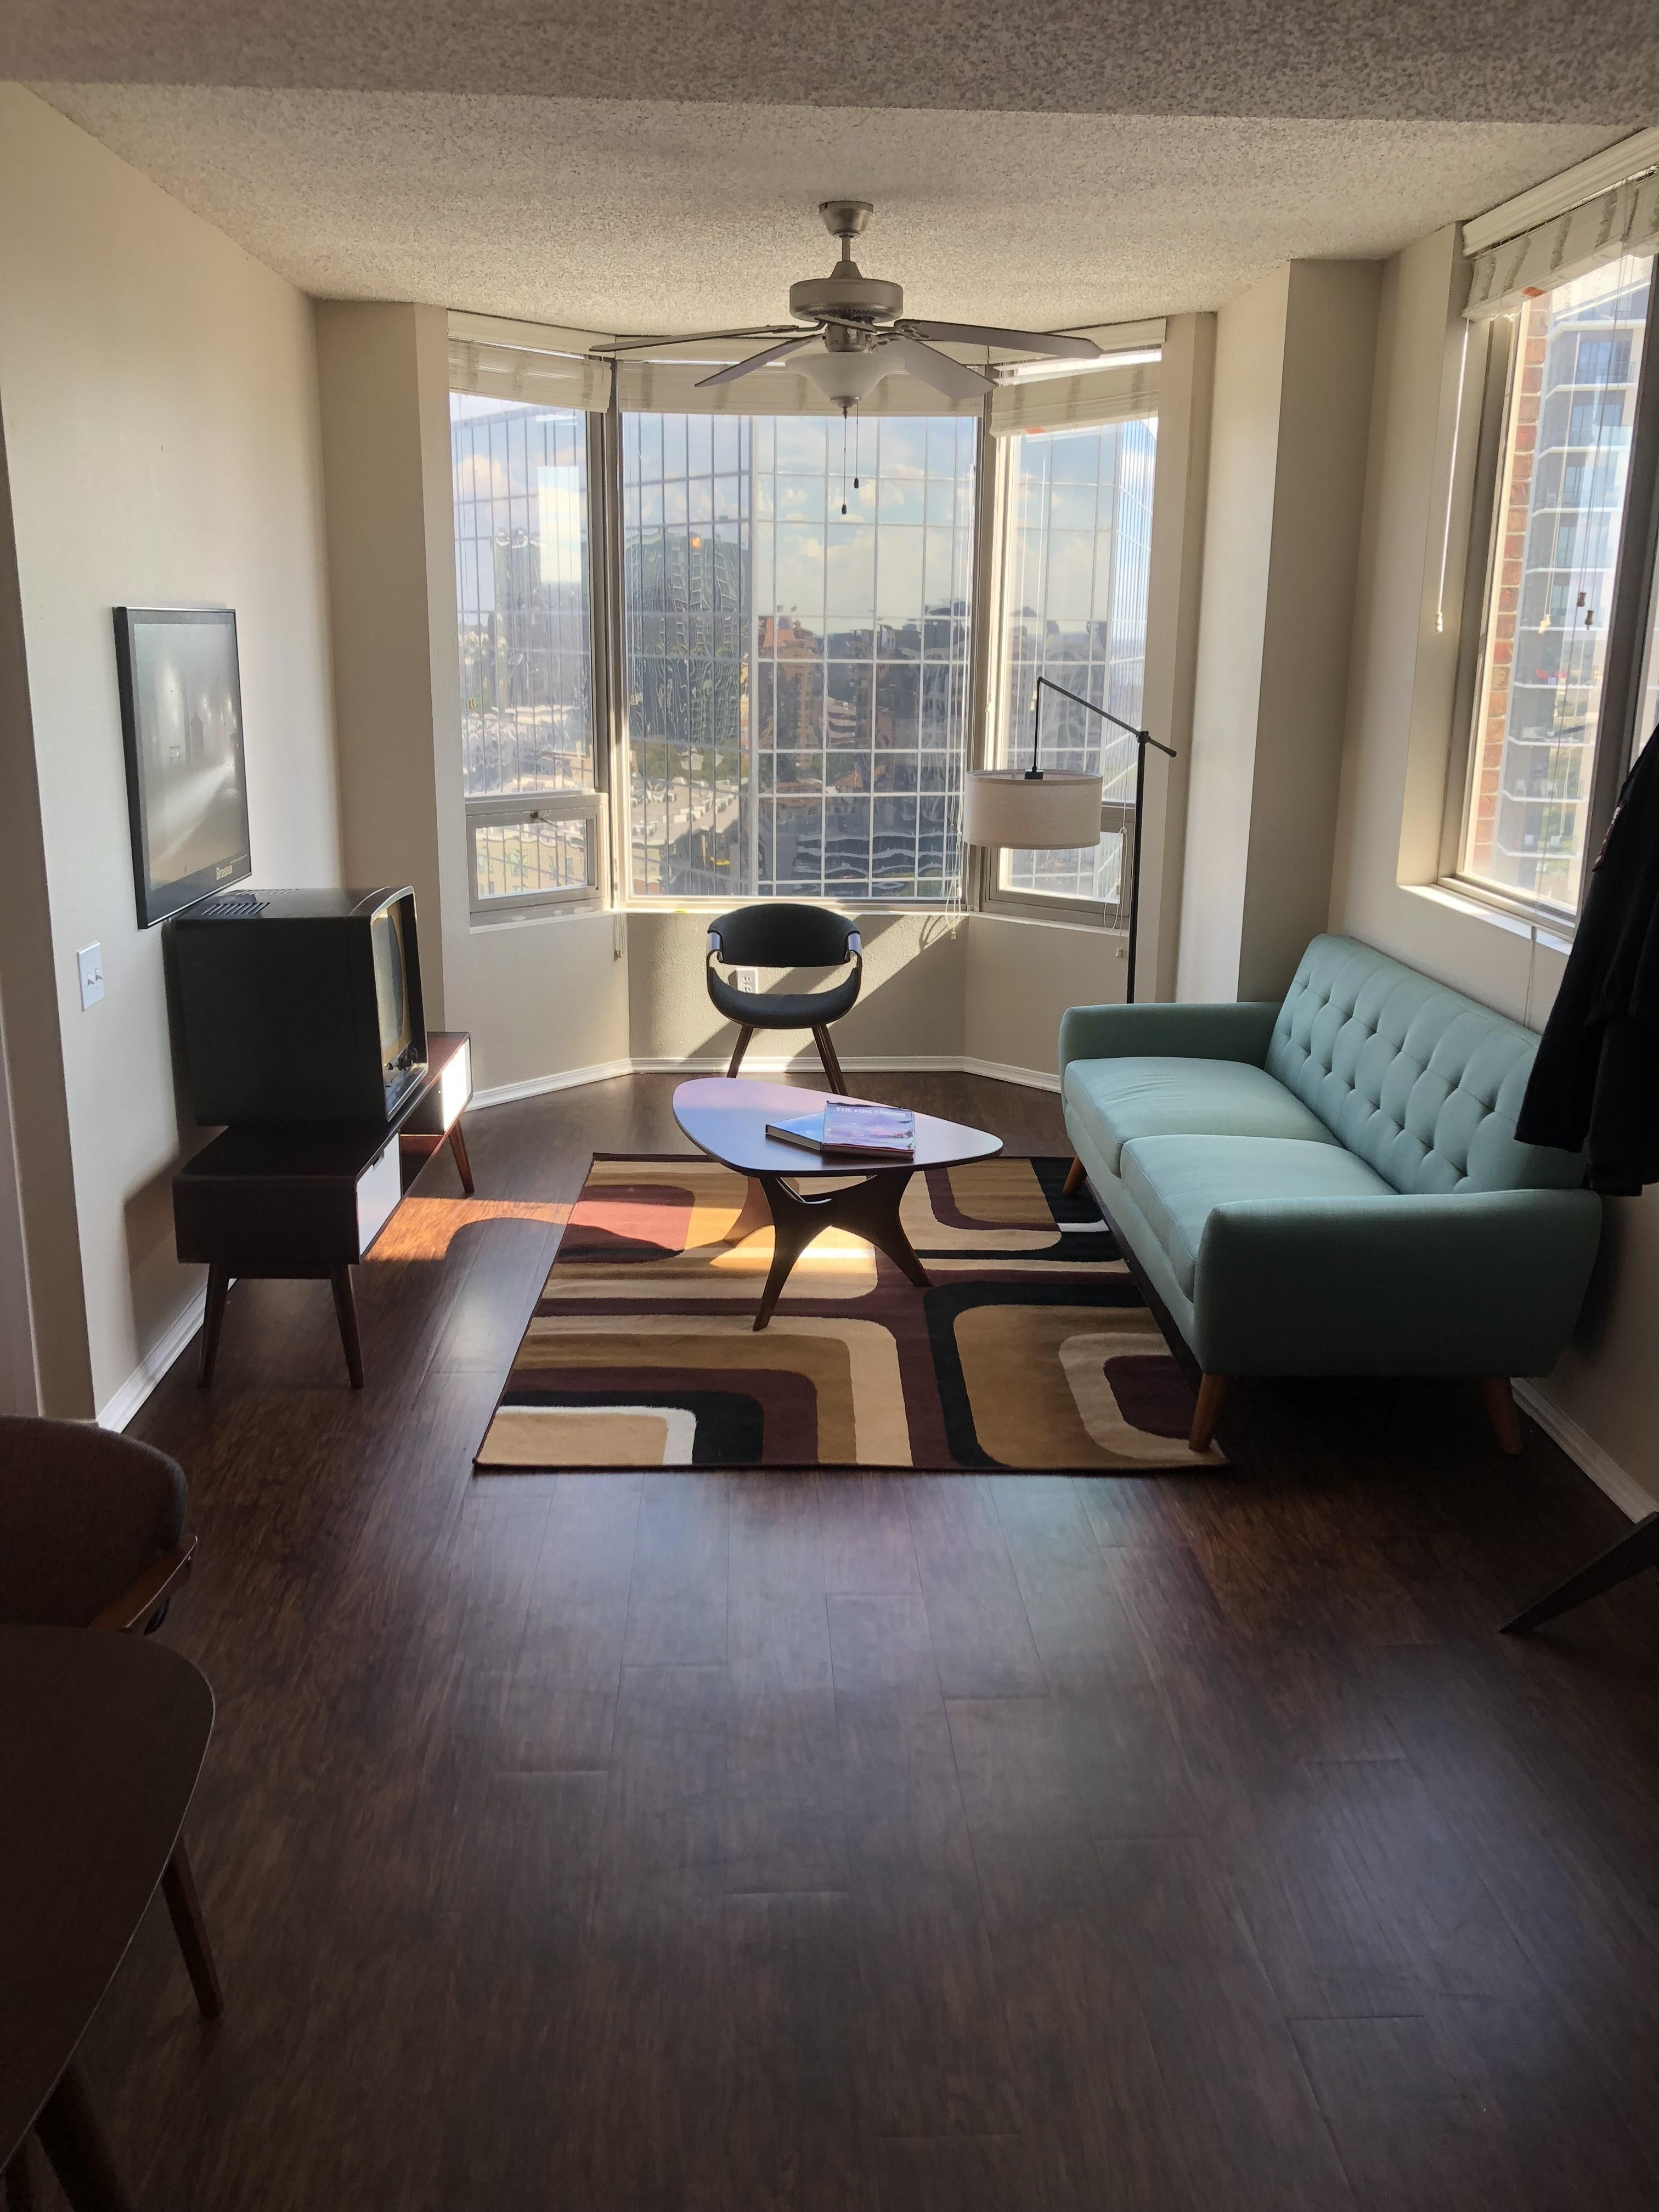 finished my mid century modern living room thanks to